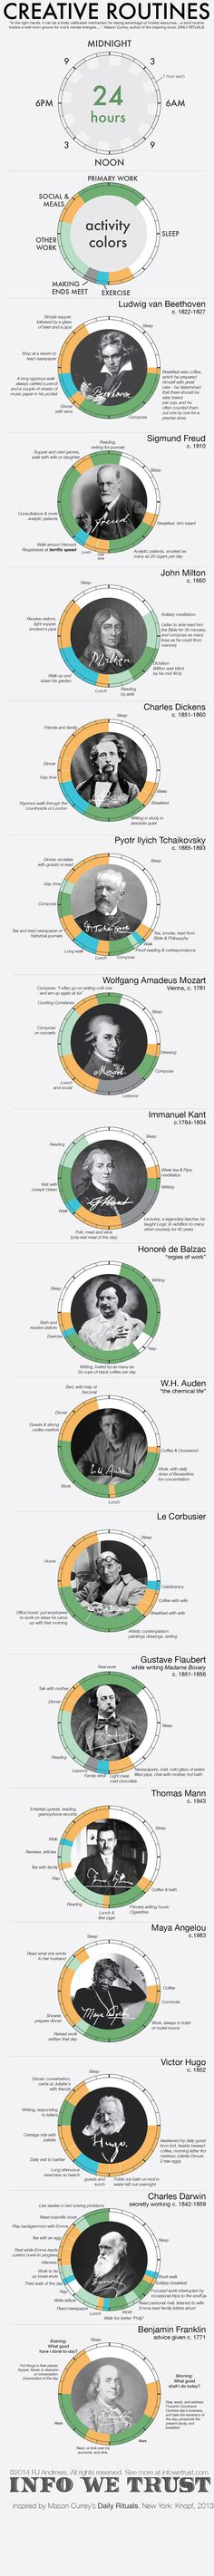 Routines of history's greatest minds reveal what artists were doing when they weren't creating.